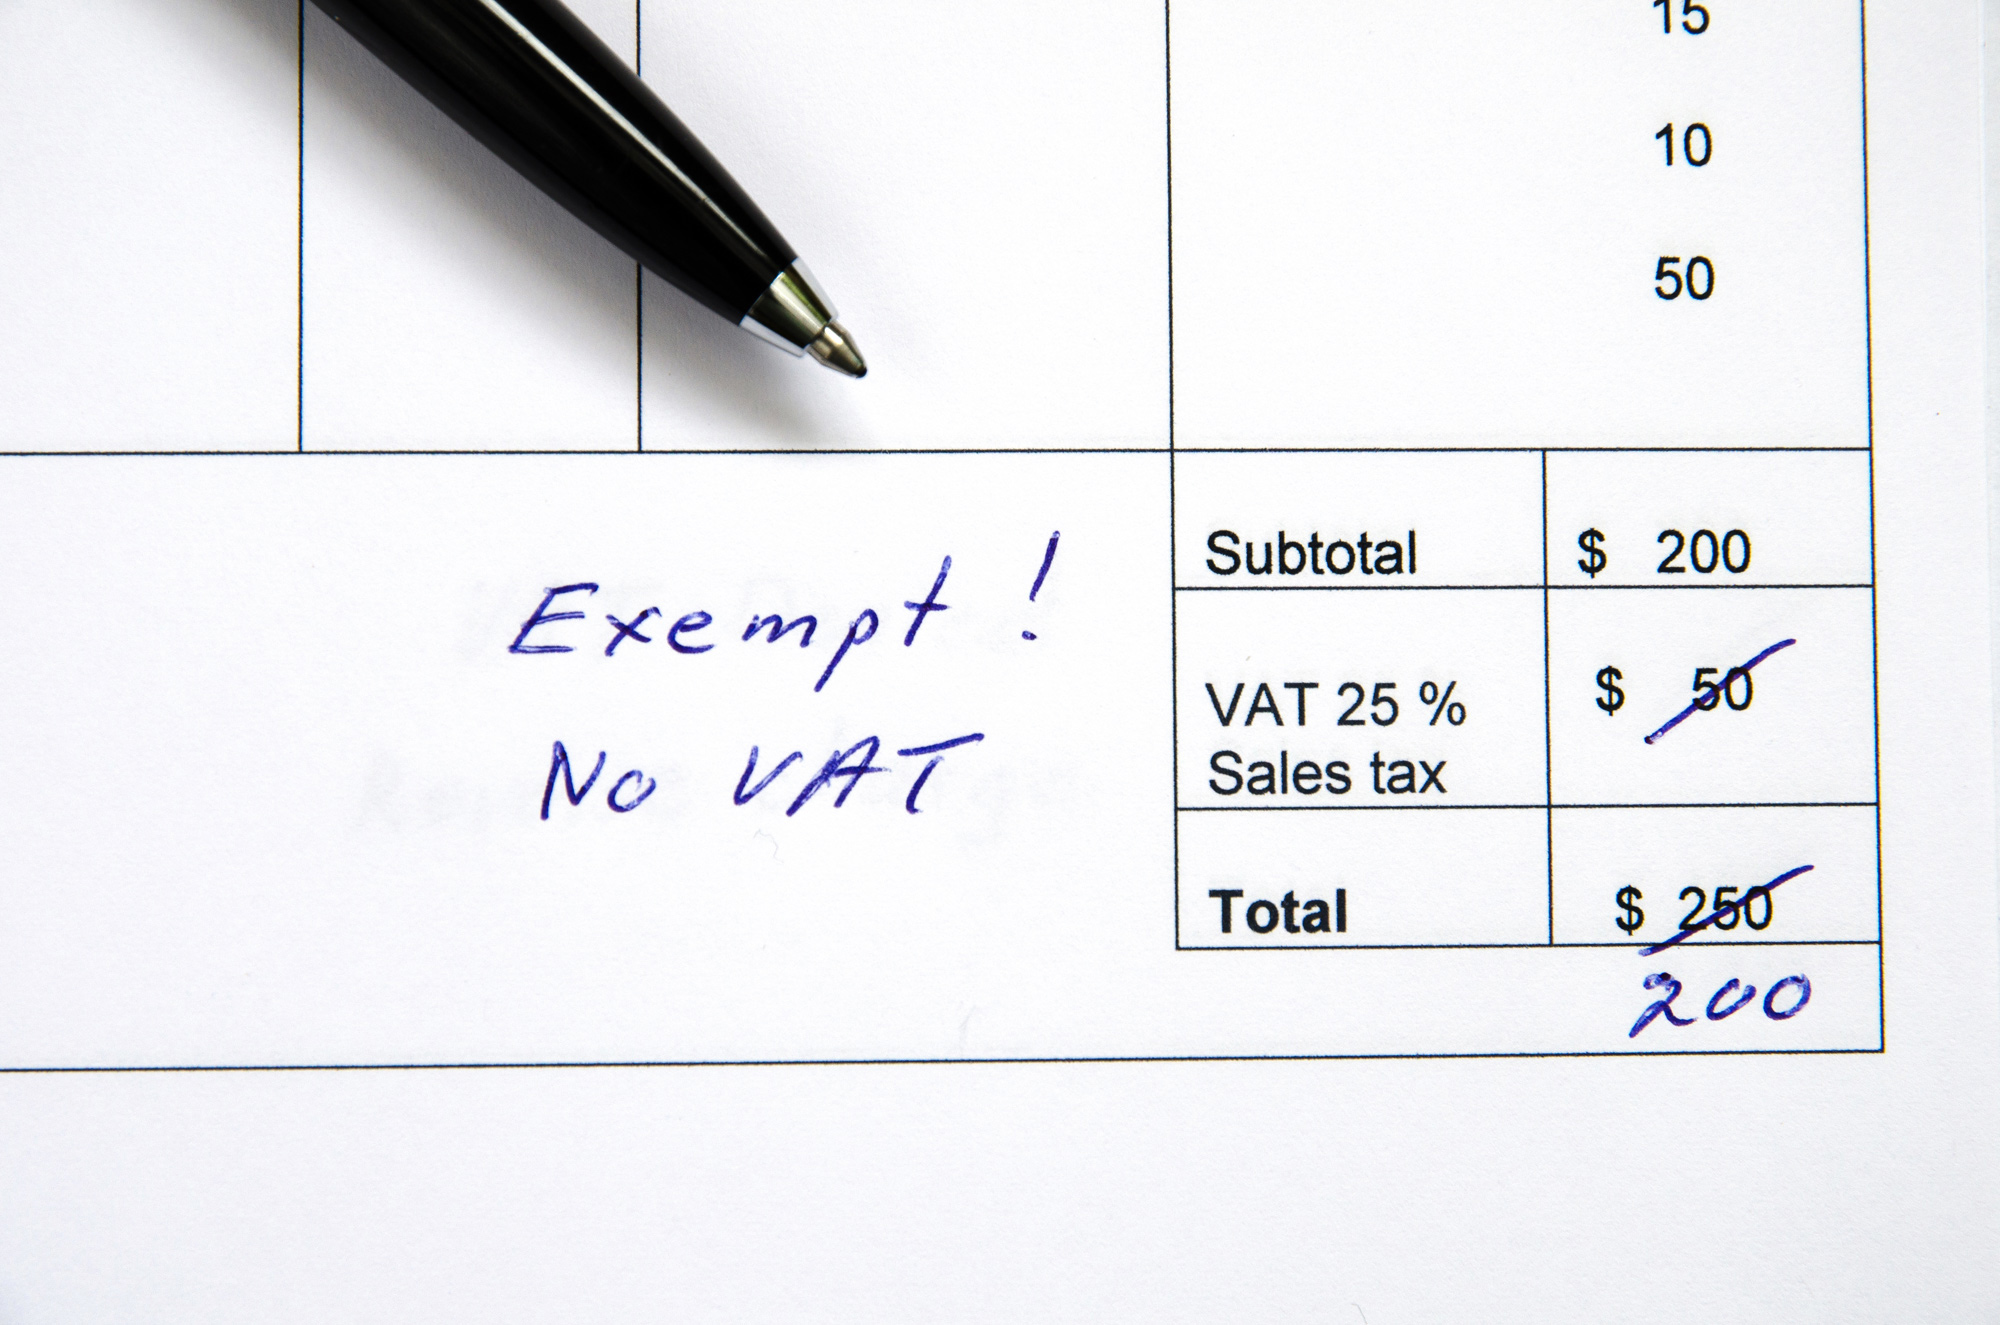 VAT EXEMPTION (ACQUISITION)